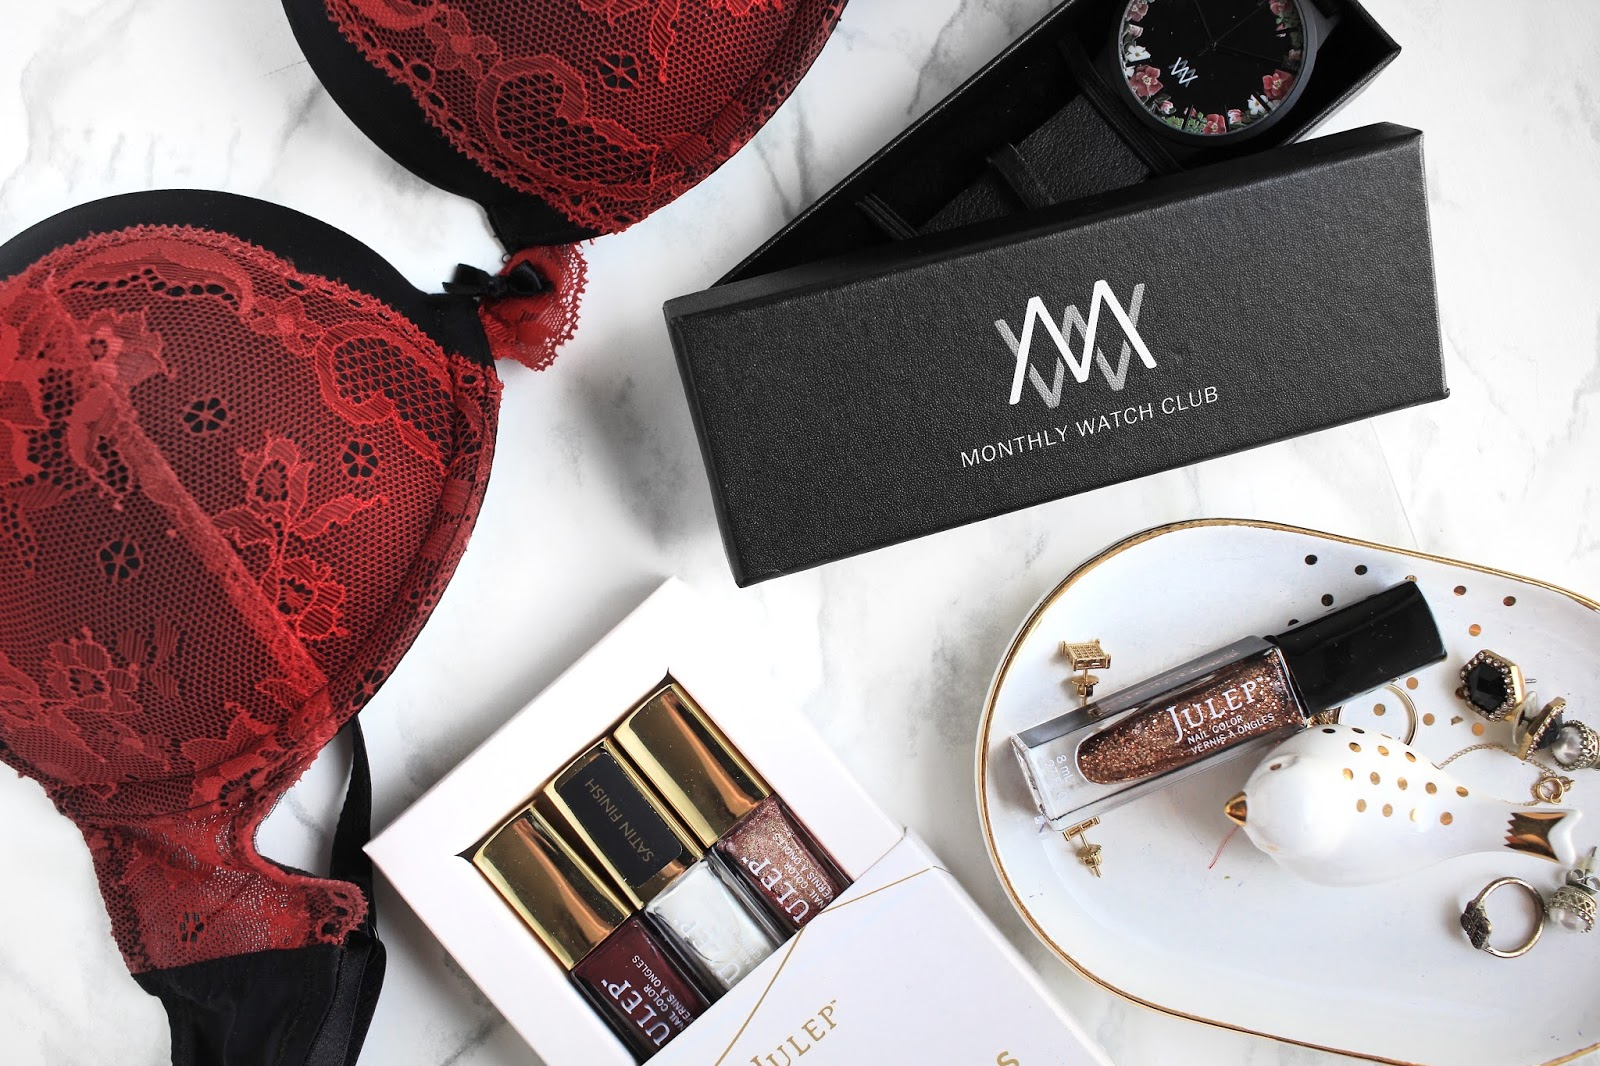 Christmas Gift Ideas: Subscription Boxes   ft. Julep, Monthly Watch Club, MunchPak, AdoreMe, GlossyBox    The Glam Surge